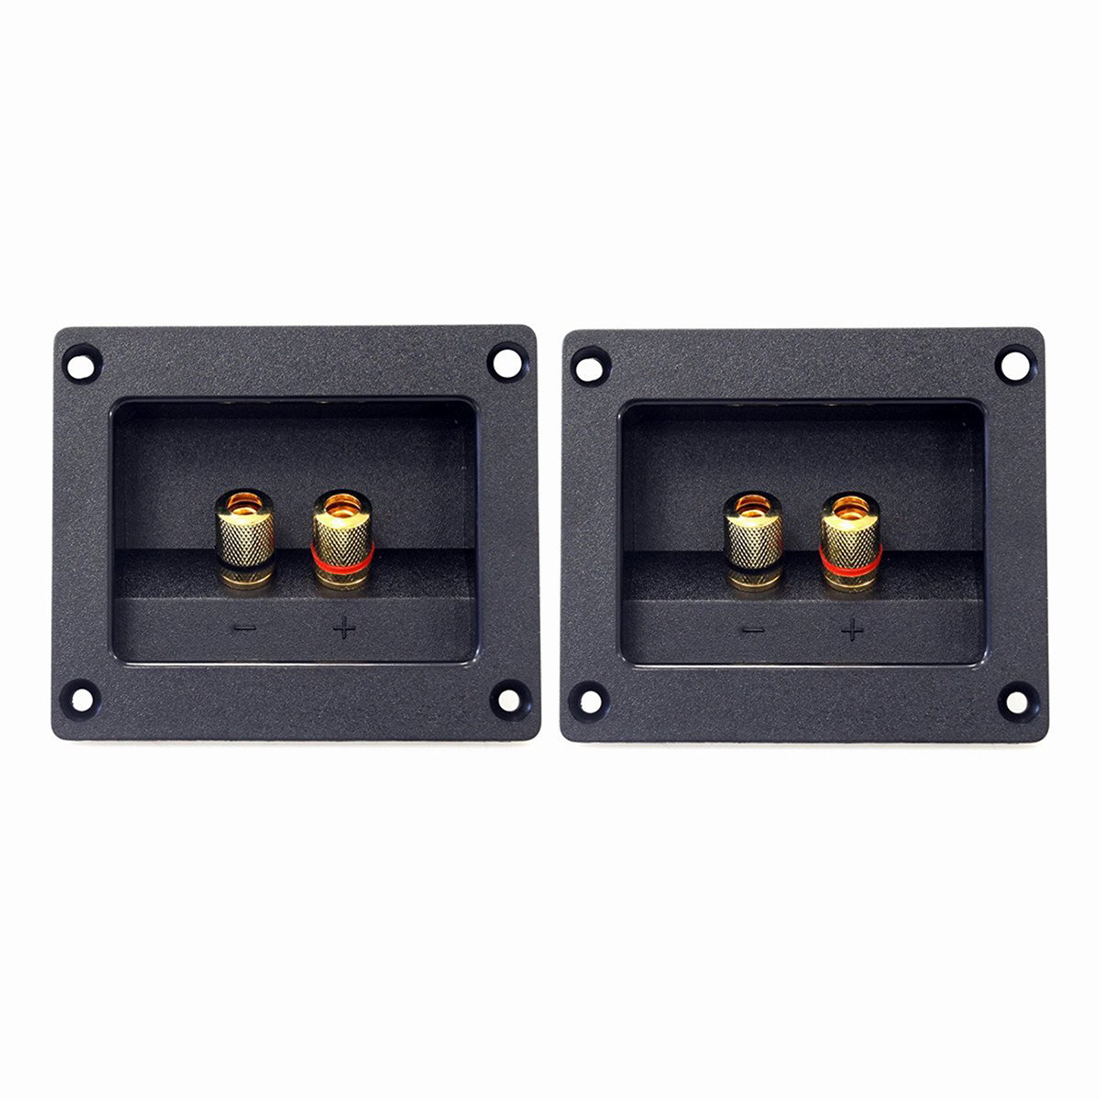 WSFS Hot 2pcs DIY Home Car Stereo 2 way Speaker Box Terminal Round Square Spring Cup Connector Binding Post Banana jack and pl Connectors     - title=